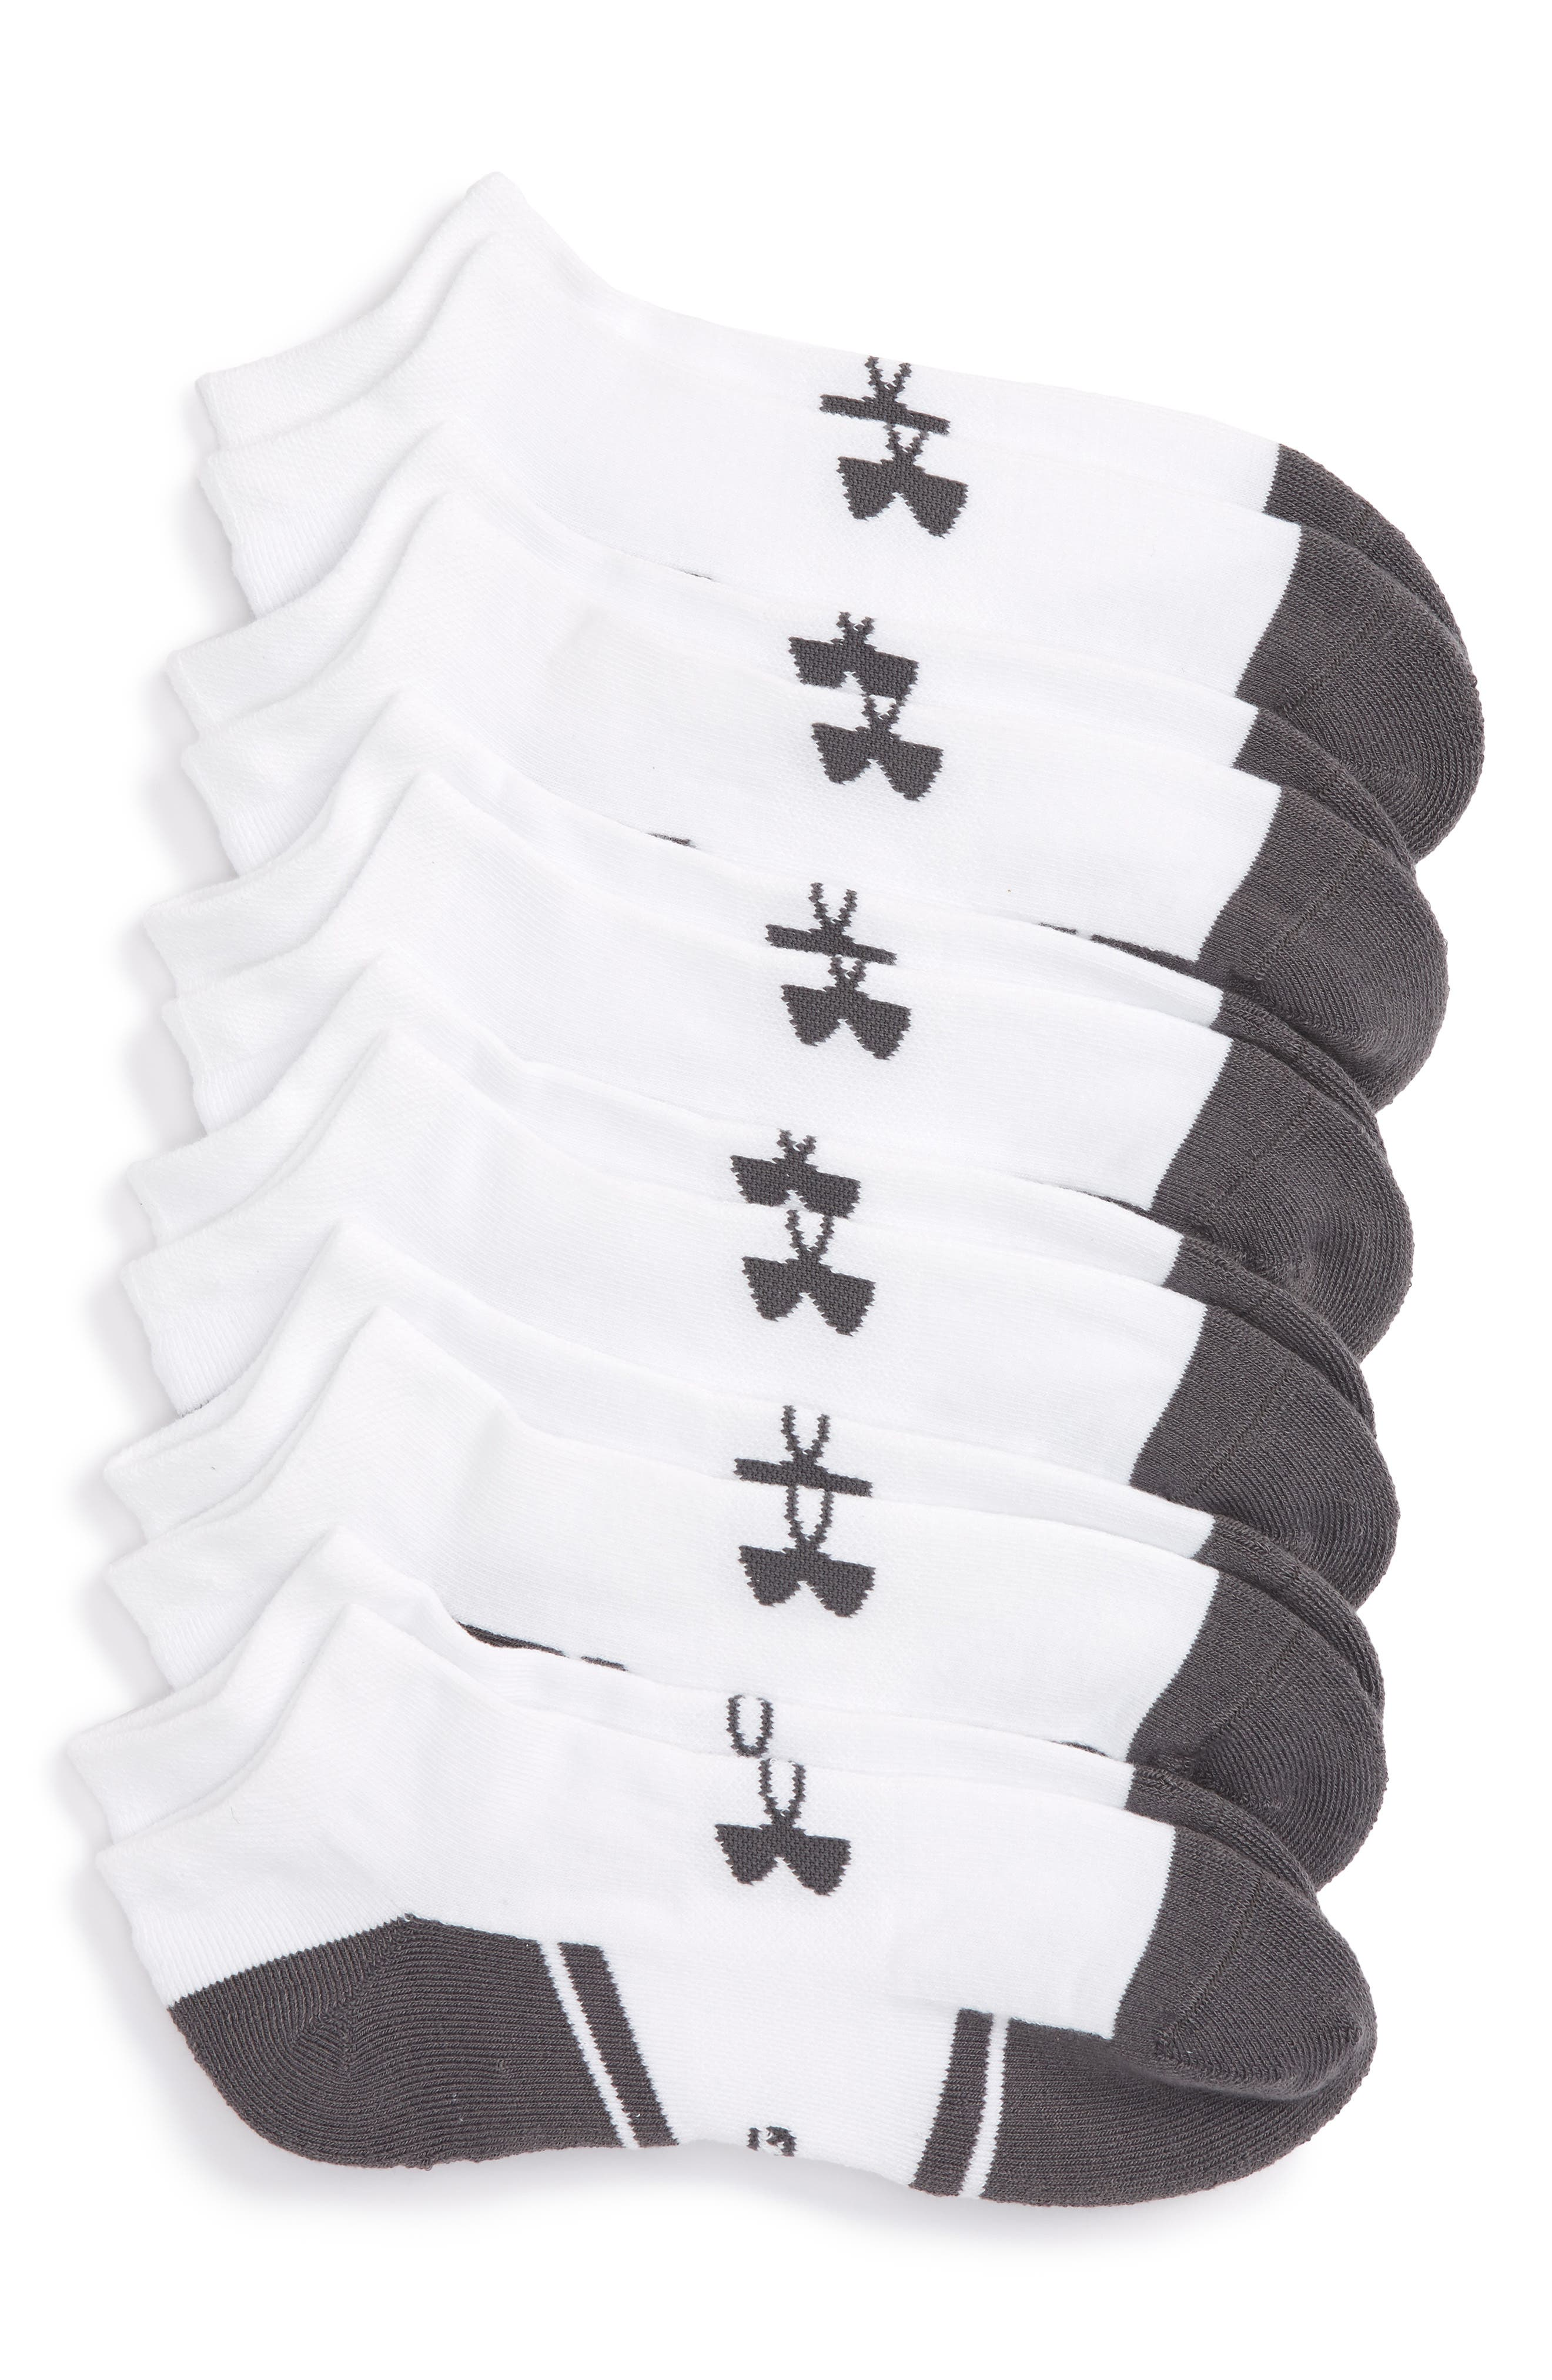 Alternate Image 1 Selected - Under Armour Resistor 3.0 6-Pack No-Show Socks